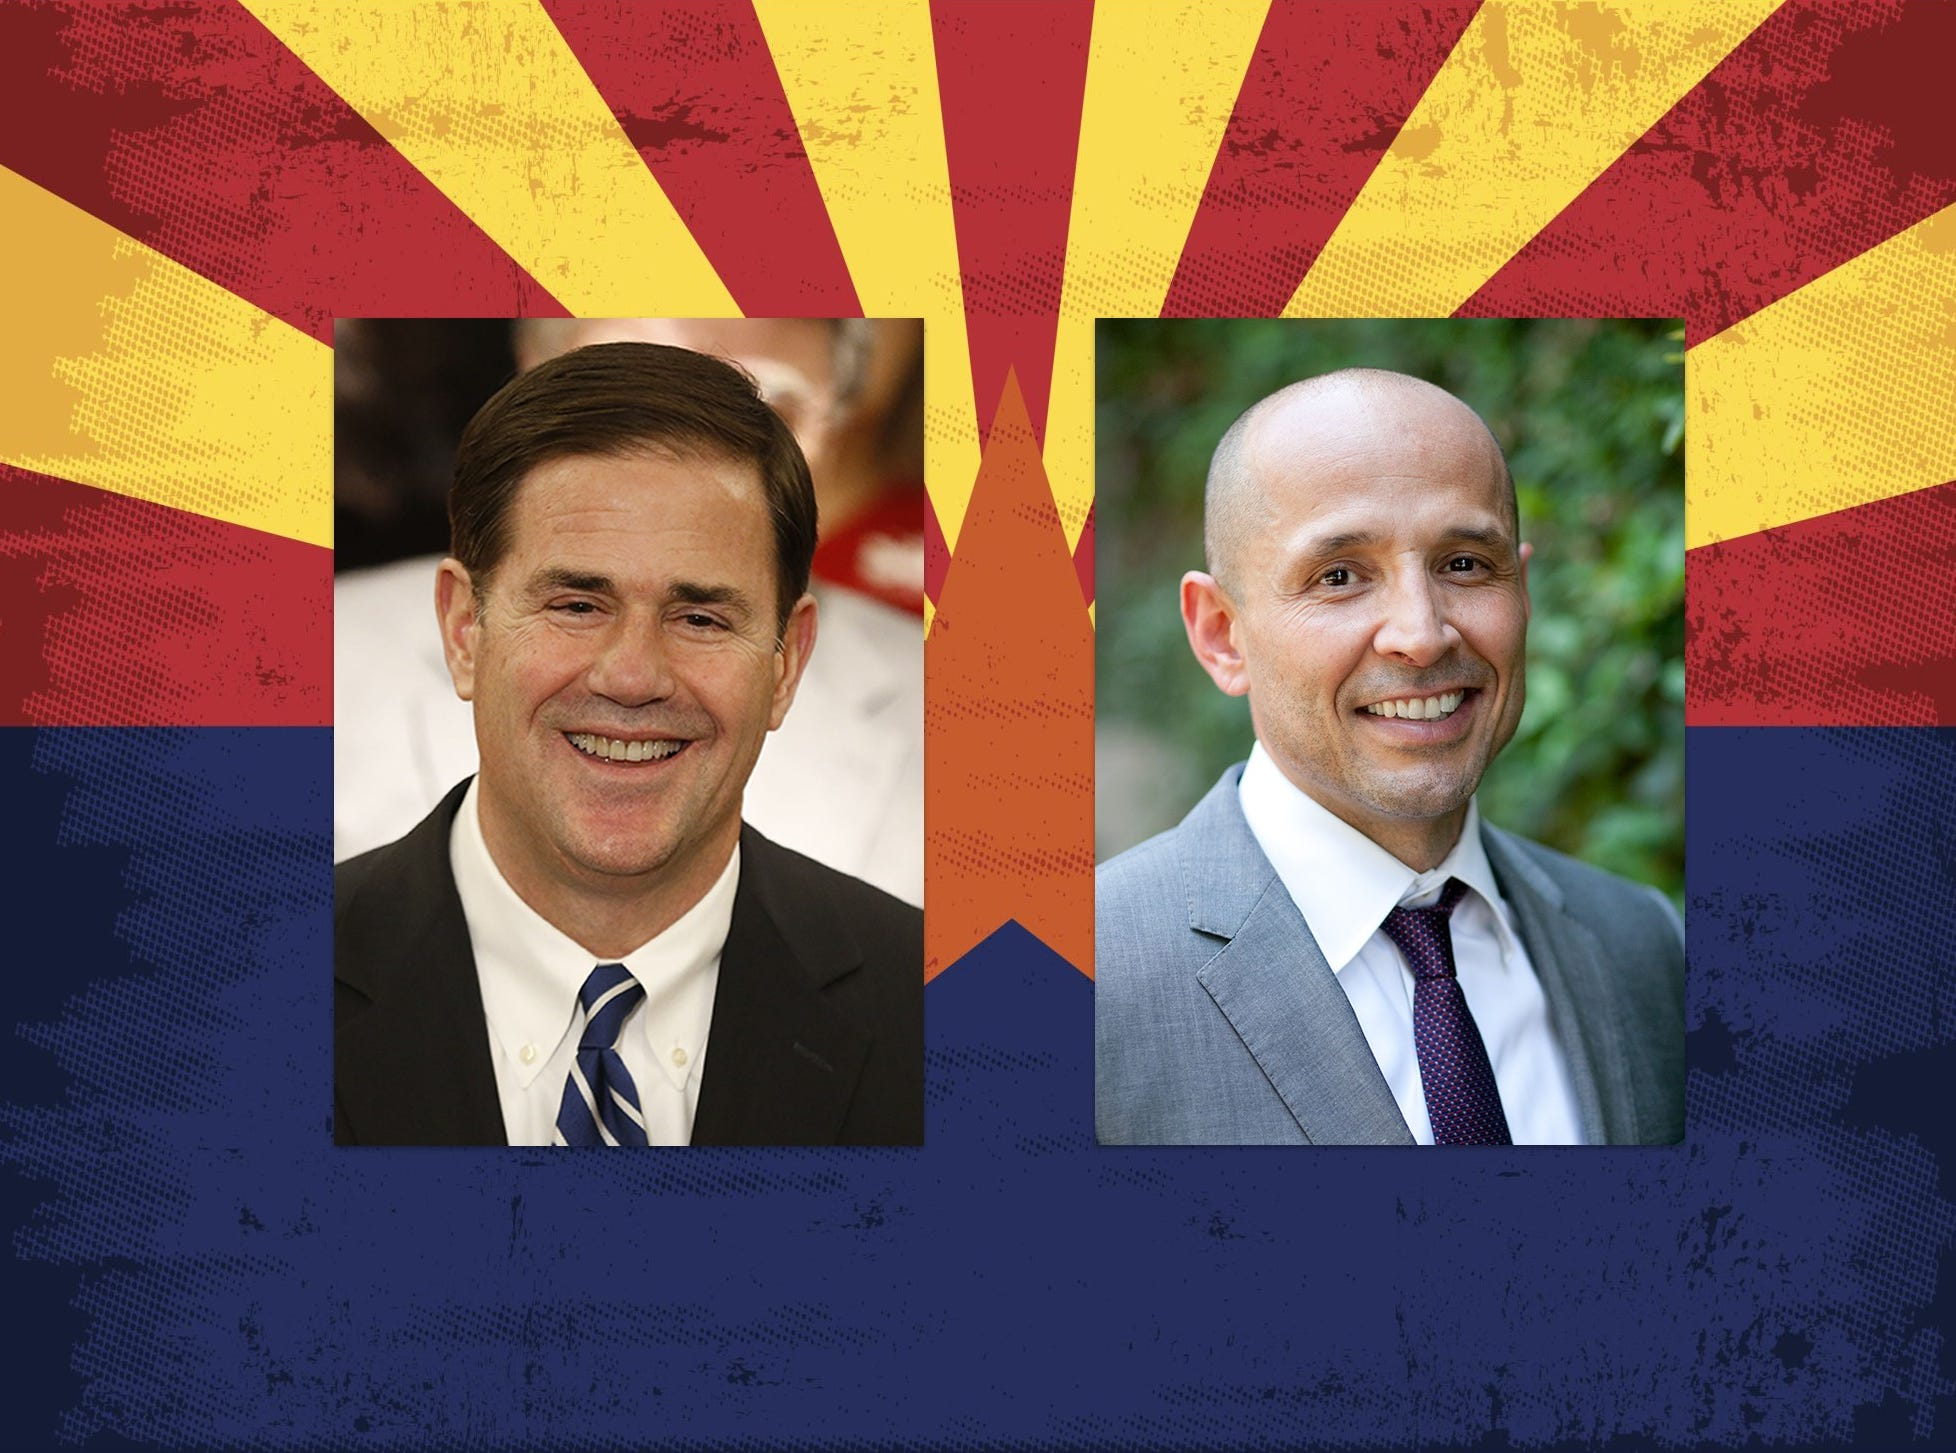 Doug Ducey Republican Gov. Doug Ducey (left) and Democrat David Garcia are both running for governor in 2018.